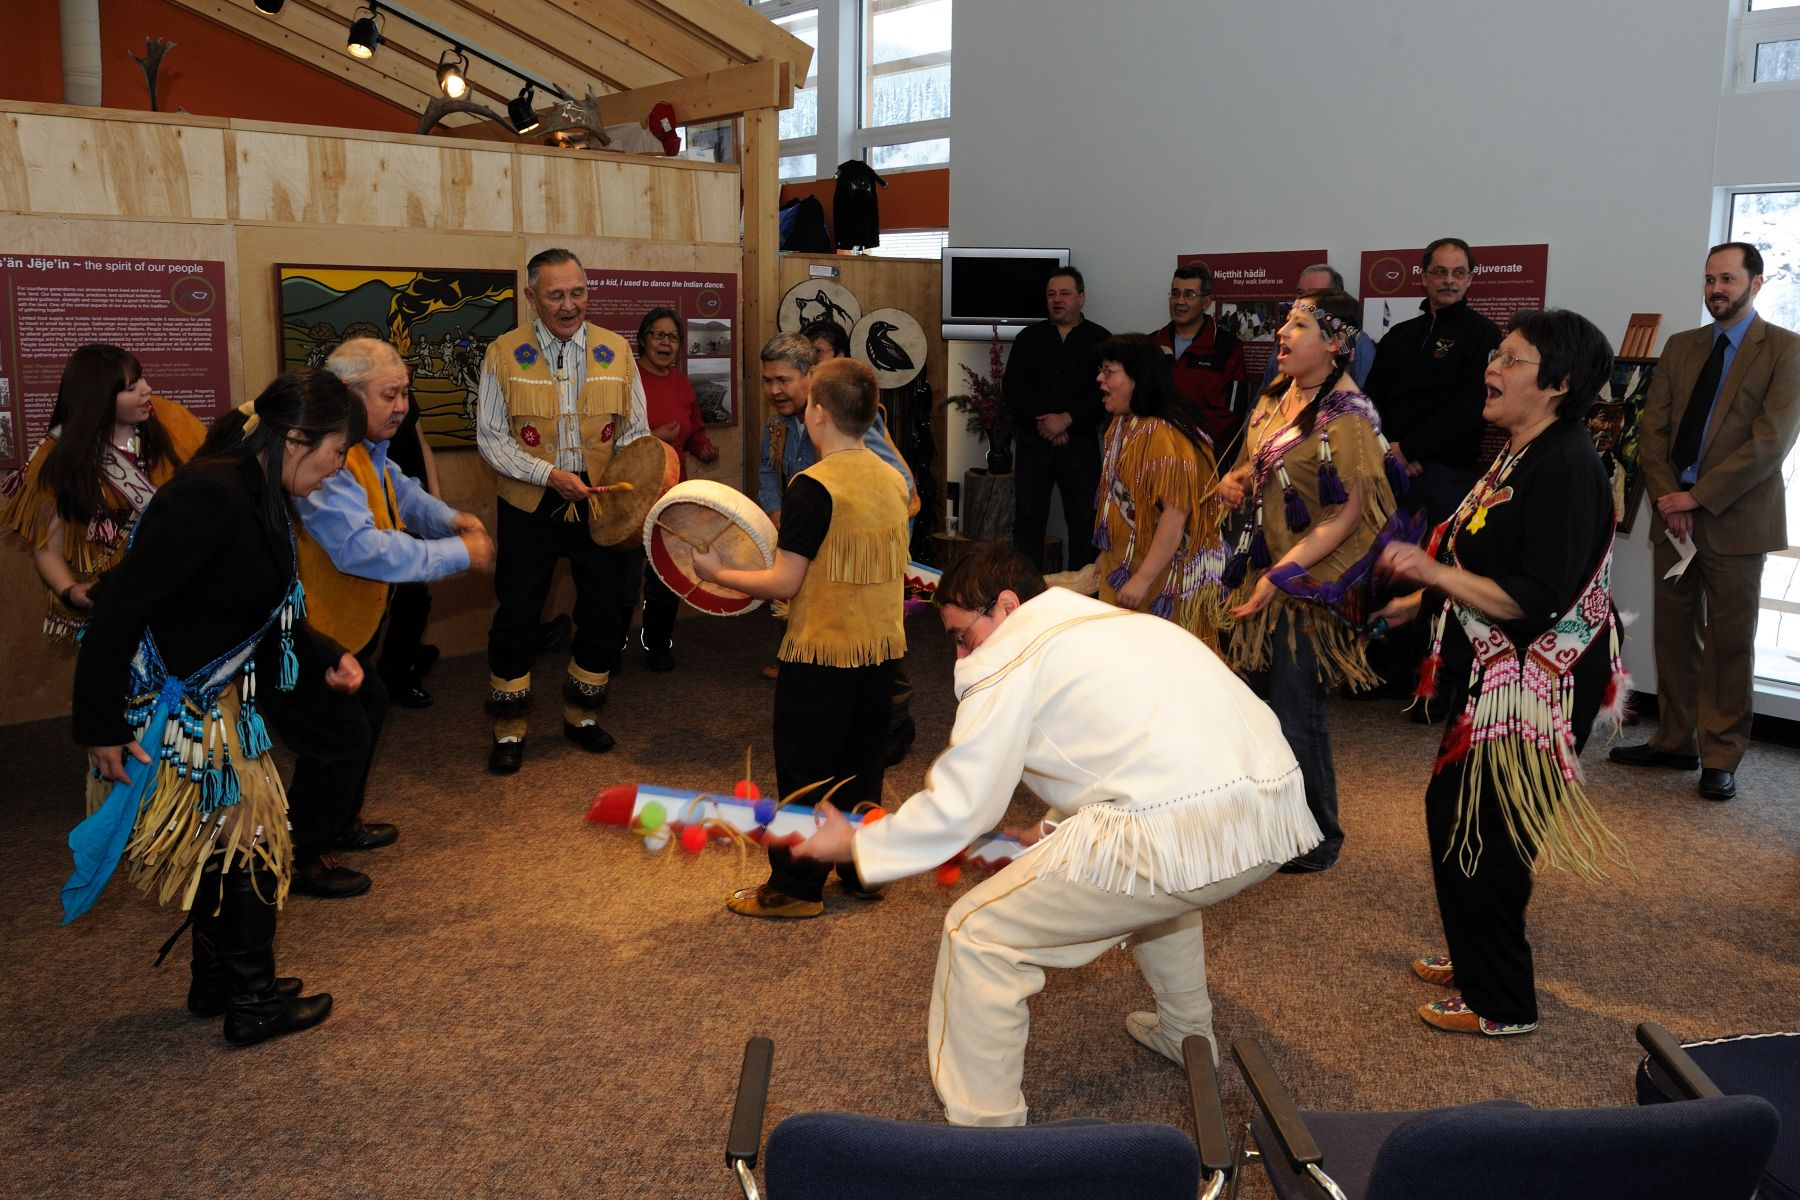 In honour of His Excellency's visit, a drumming dance was performed.